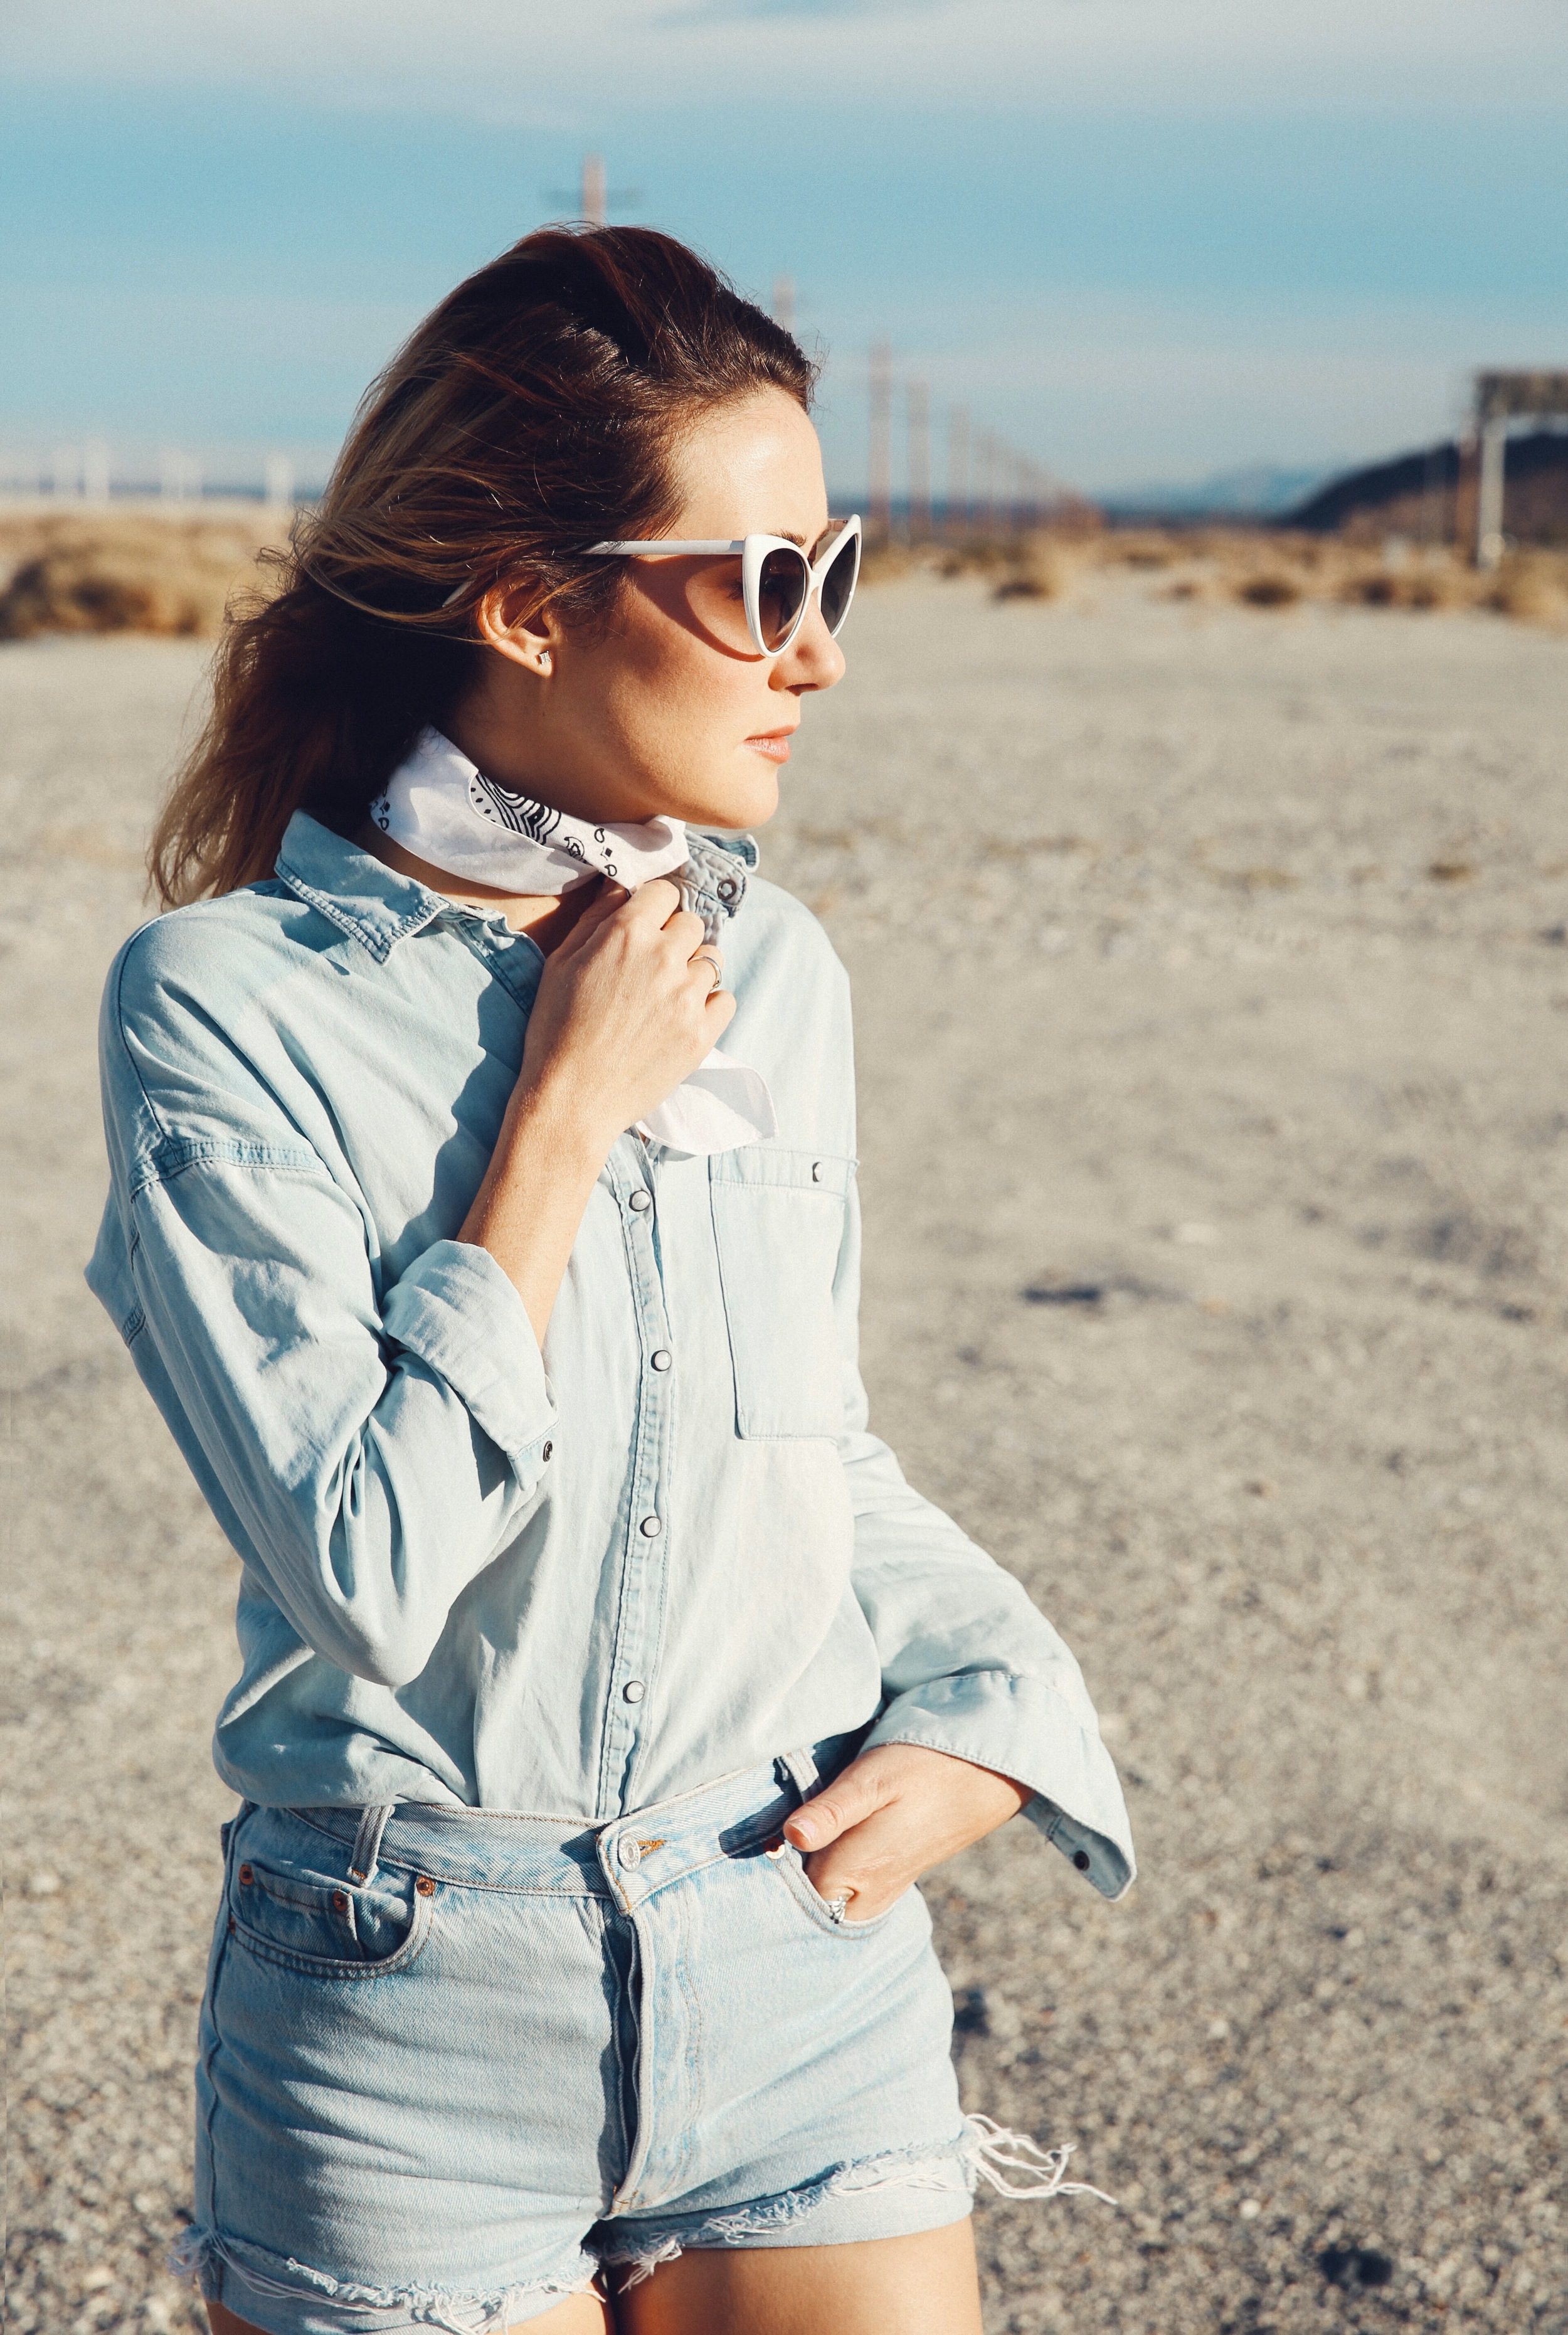 On our way out of town we had to pull over and take a few photos for the quintessential roadside shot. Here I'm channeling another time in denim on denim, a white bandana,and cat eye sunglasses